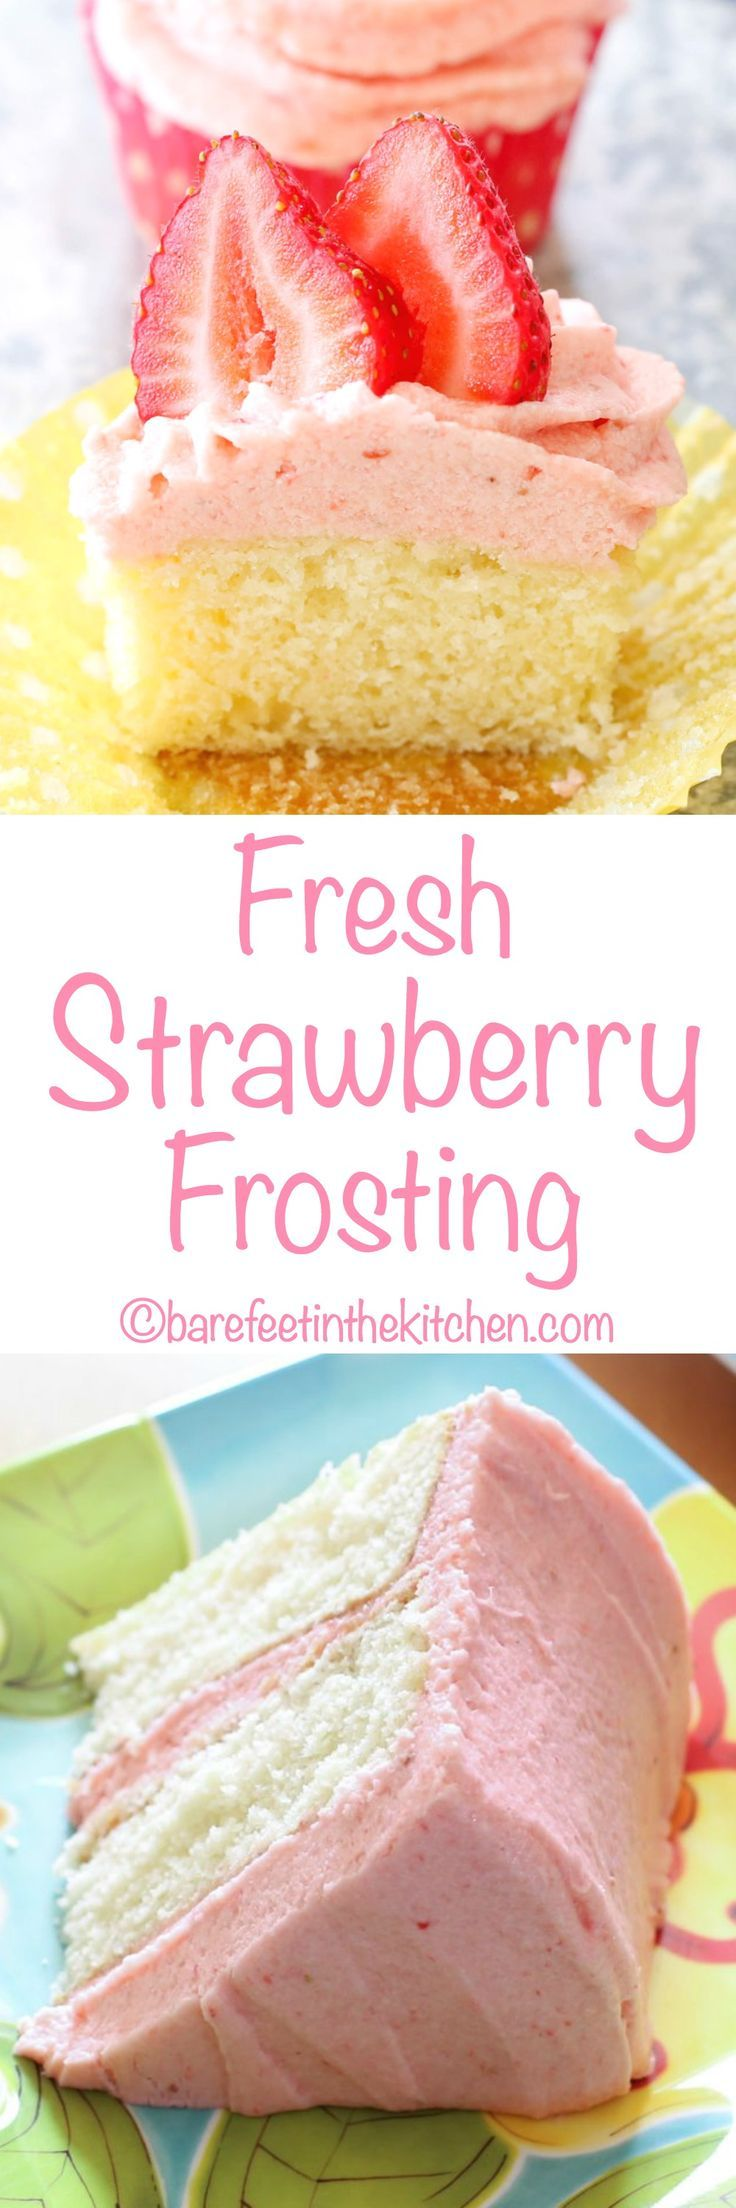 Fresh Strawberry Frosting is a strawberry lover's dream come true! Get the recipe at barefeetinthekitchen.com